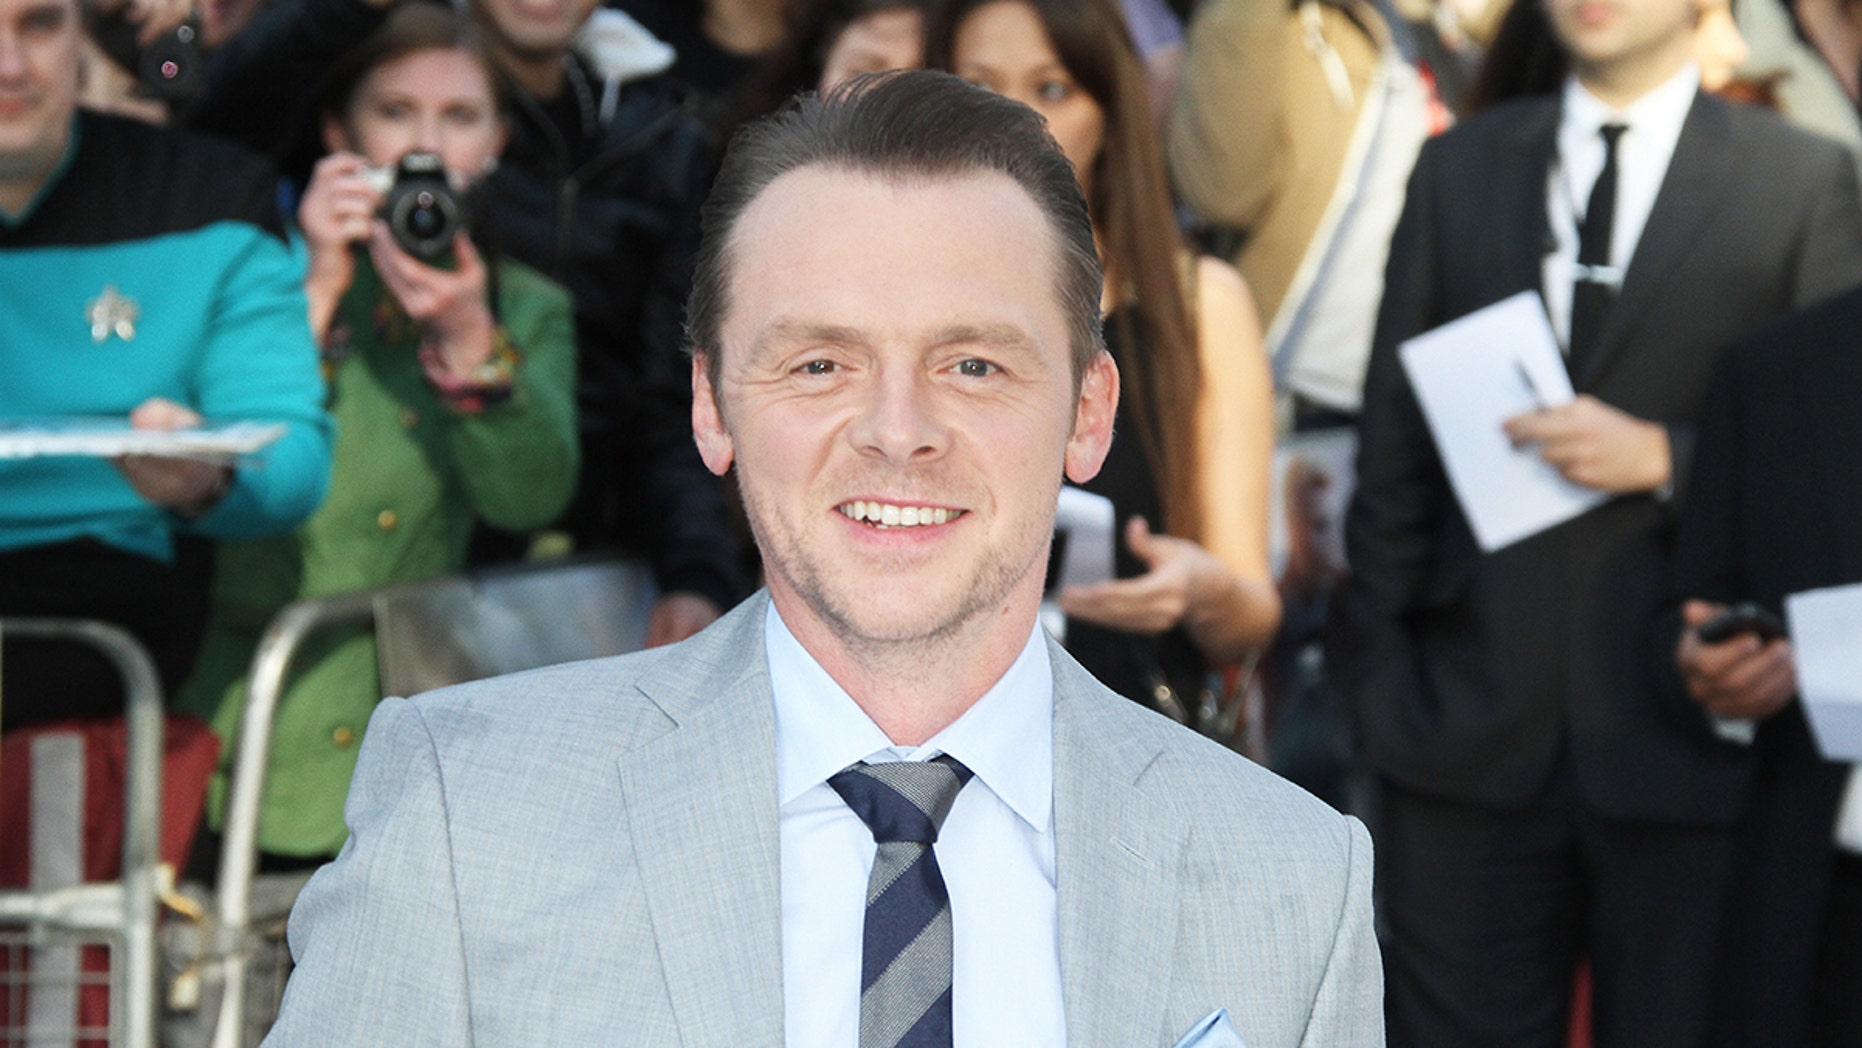 Simon Pegg recently revealed his previous struggles with alcoholism and depression.